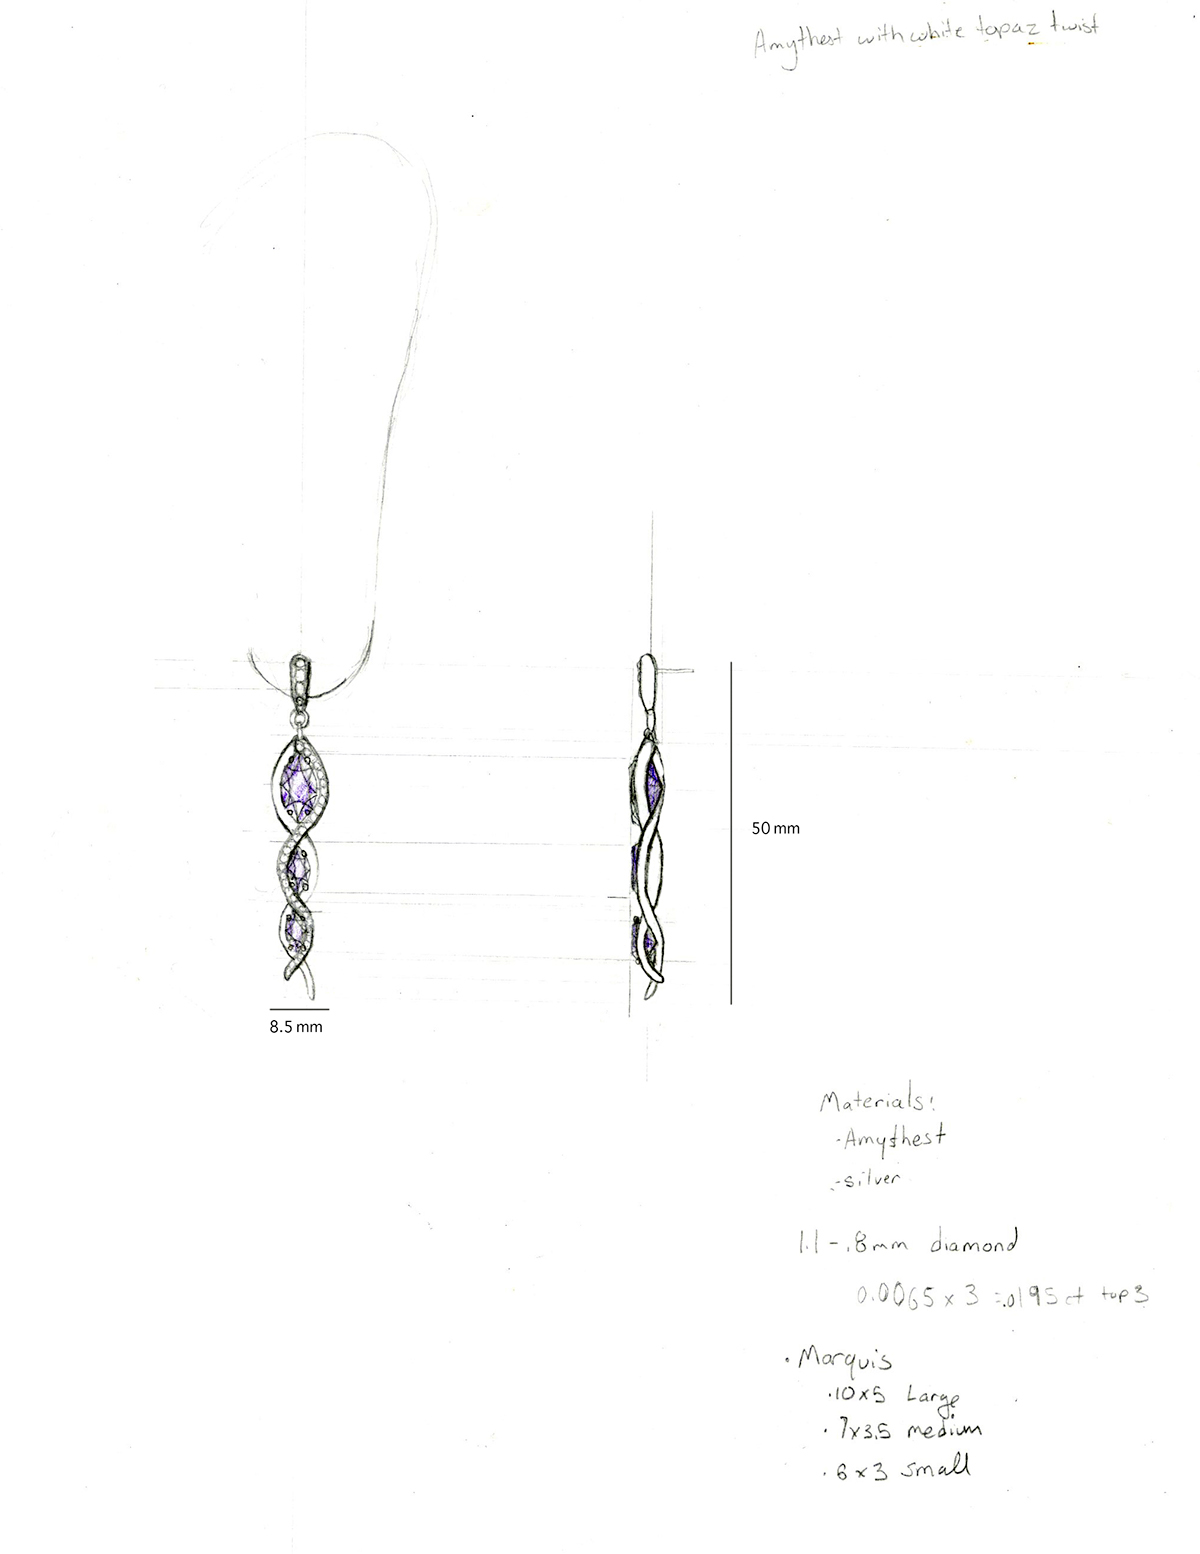 suite jewelry Renderings sketches ideation